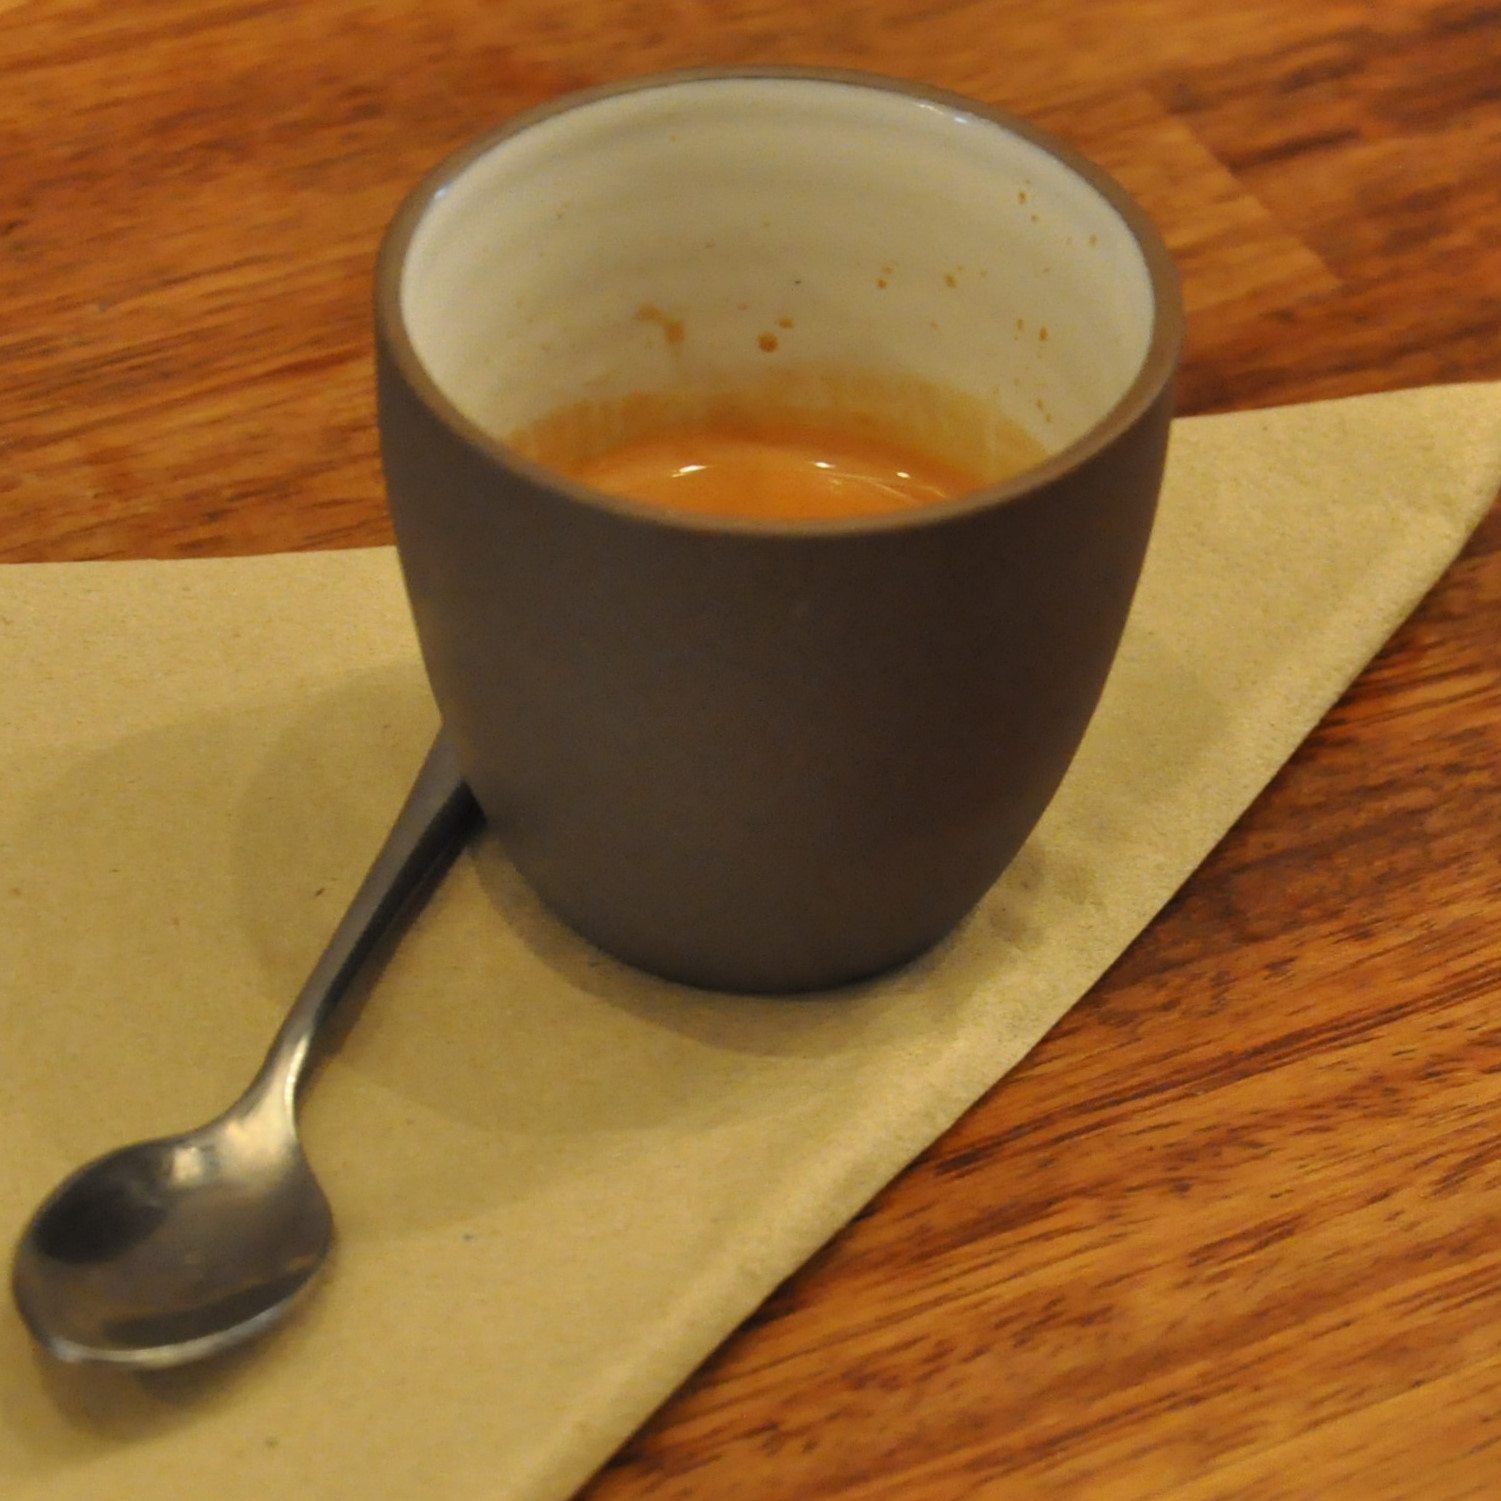 A shot of the guest espresso at Baltzersens in Harrogate, served in a handleless cup.